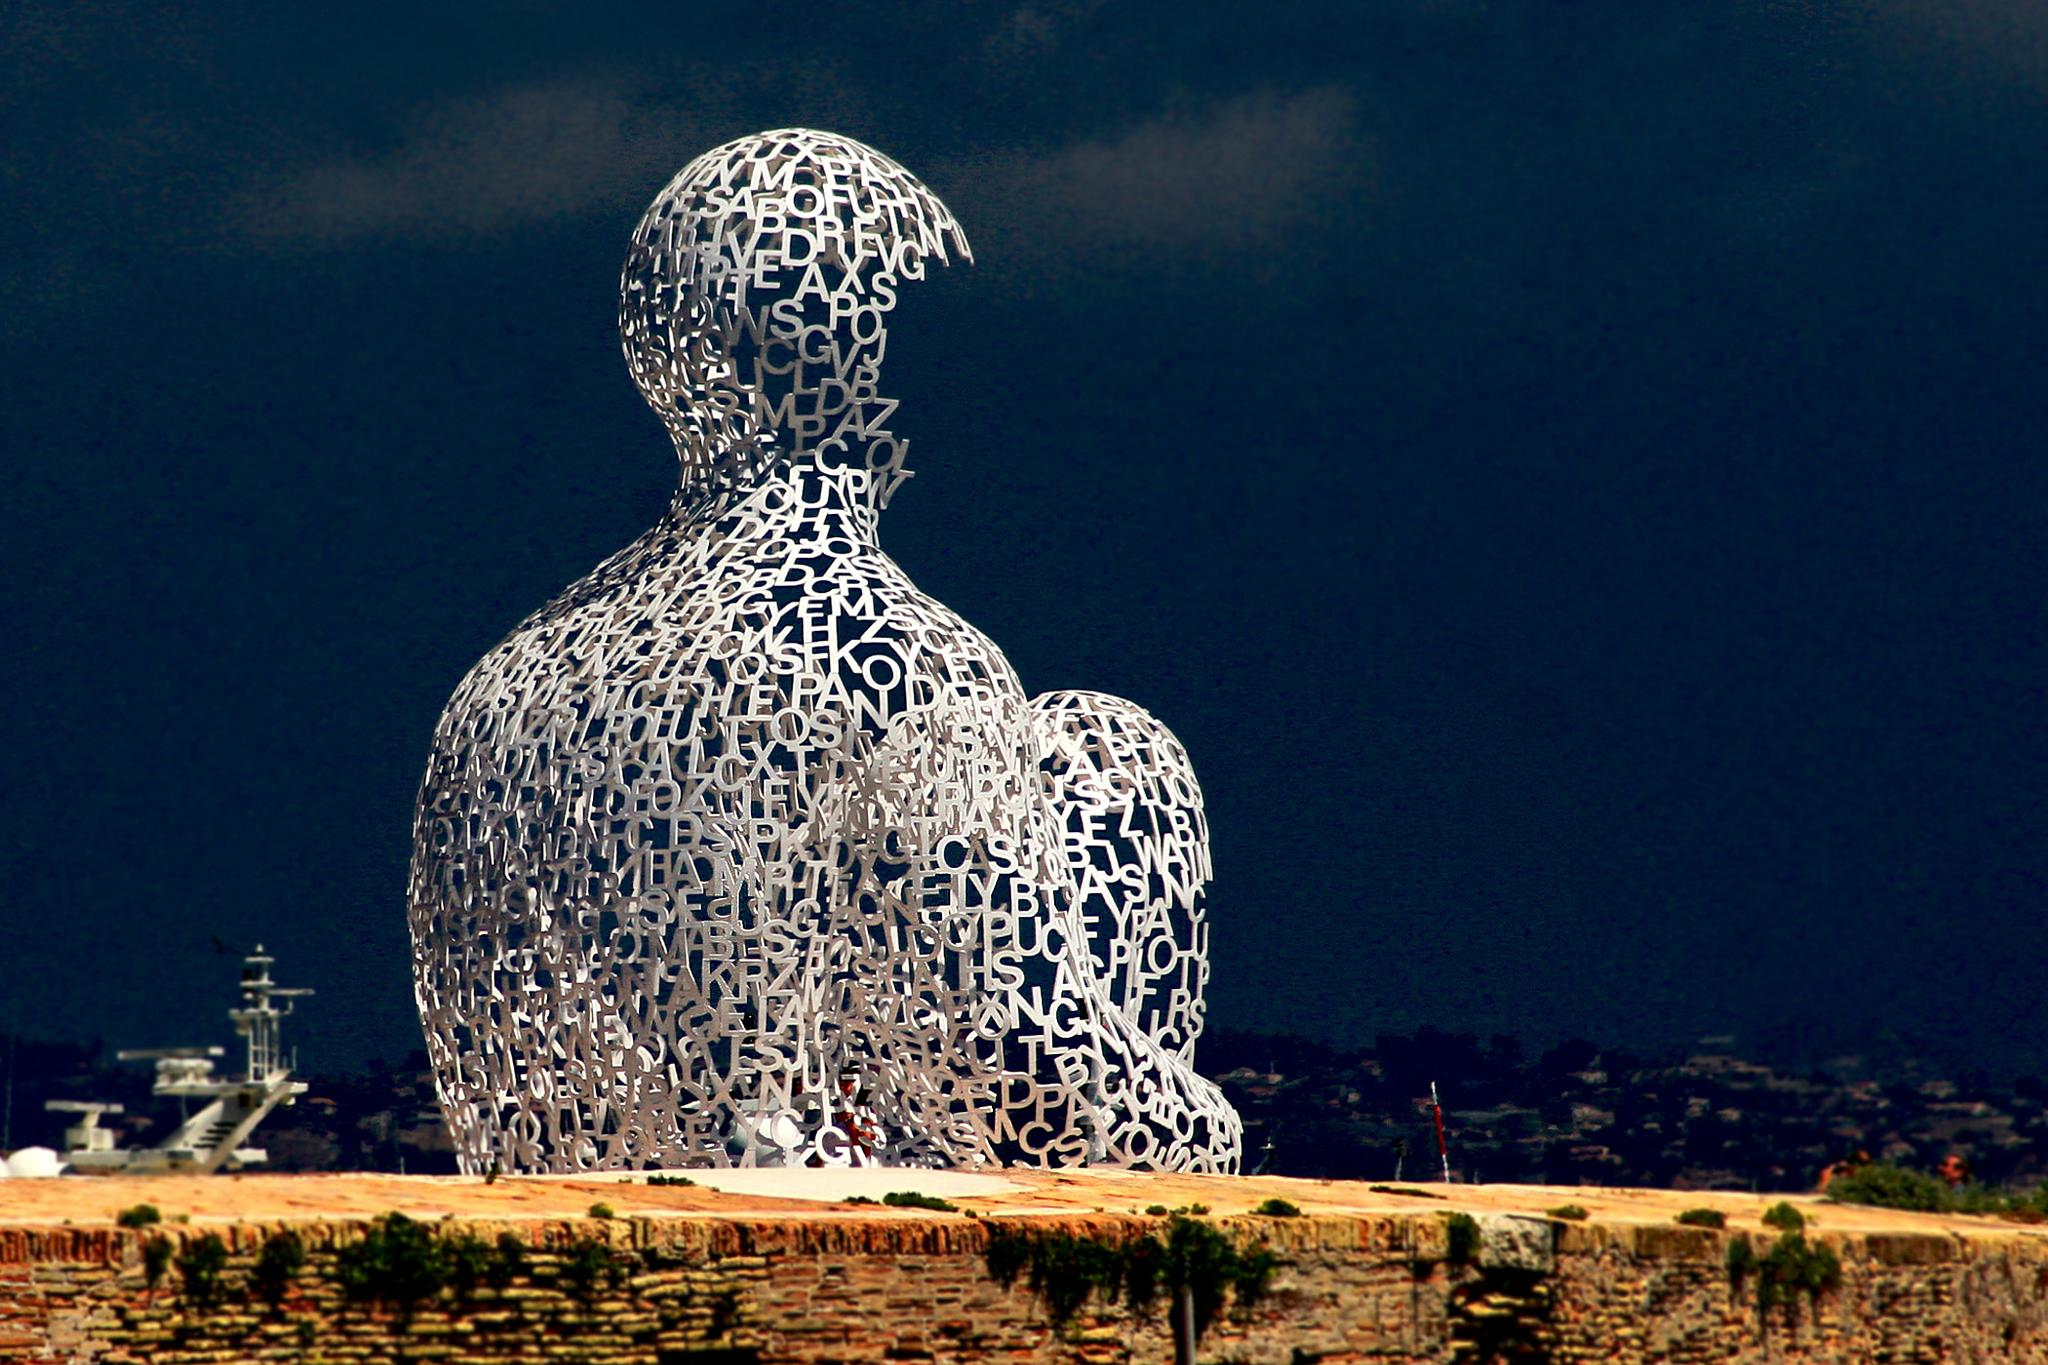 """Nomade"" by Jaume Plensa by regzech"